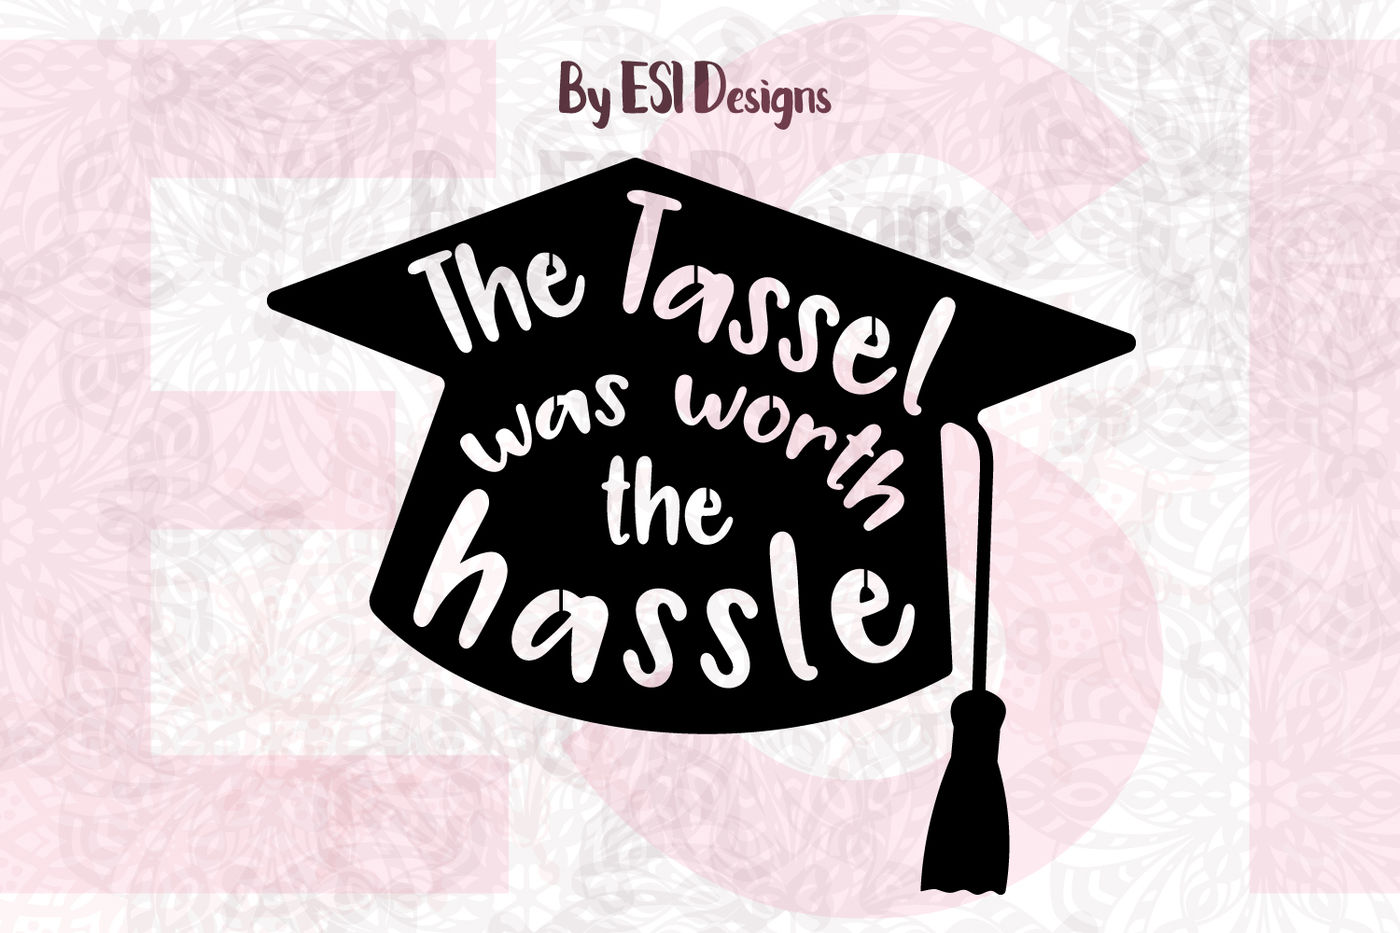 The Tassel Was Worth The Hassle Graduation Svg Dxf Eps Png By